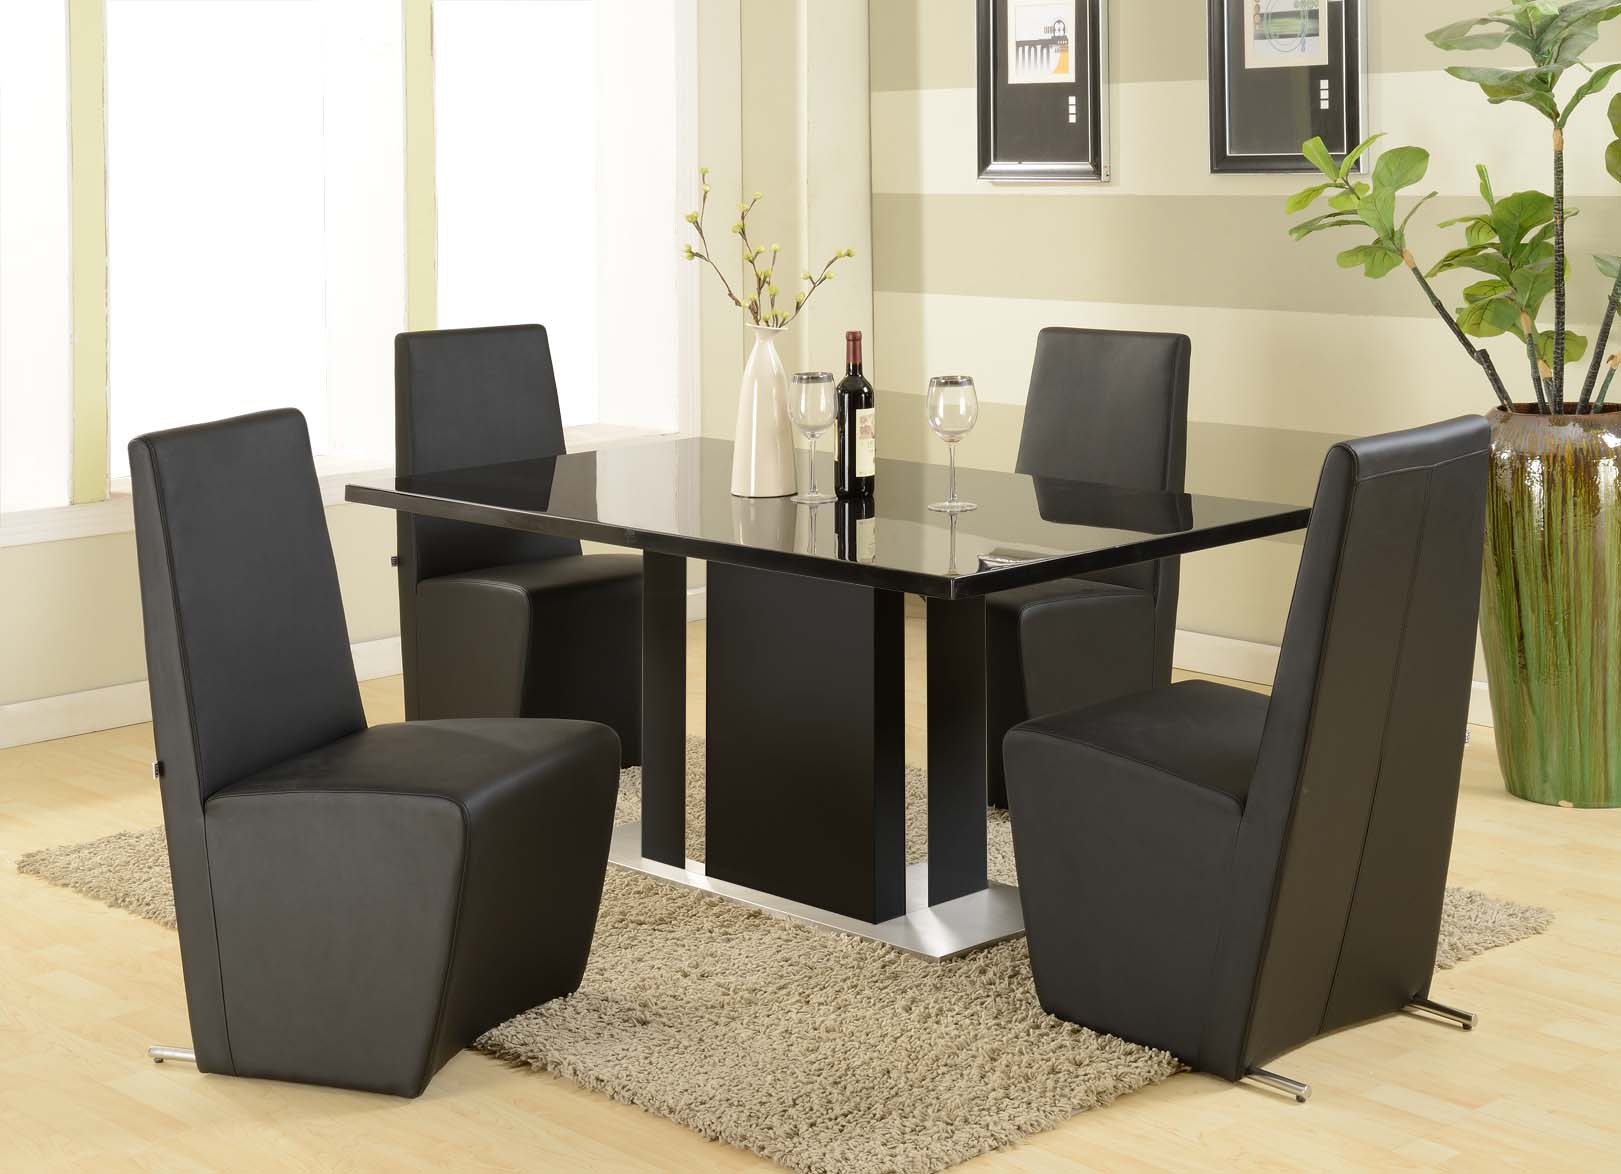 Modern furniture table home design roosa for Dining room table and chair ideas